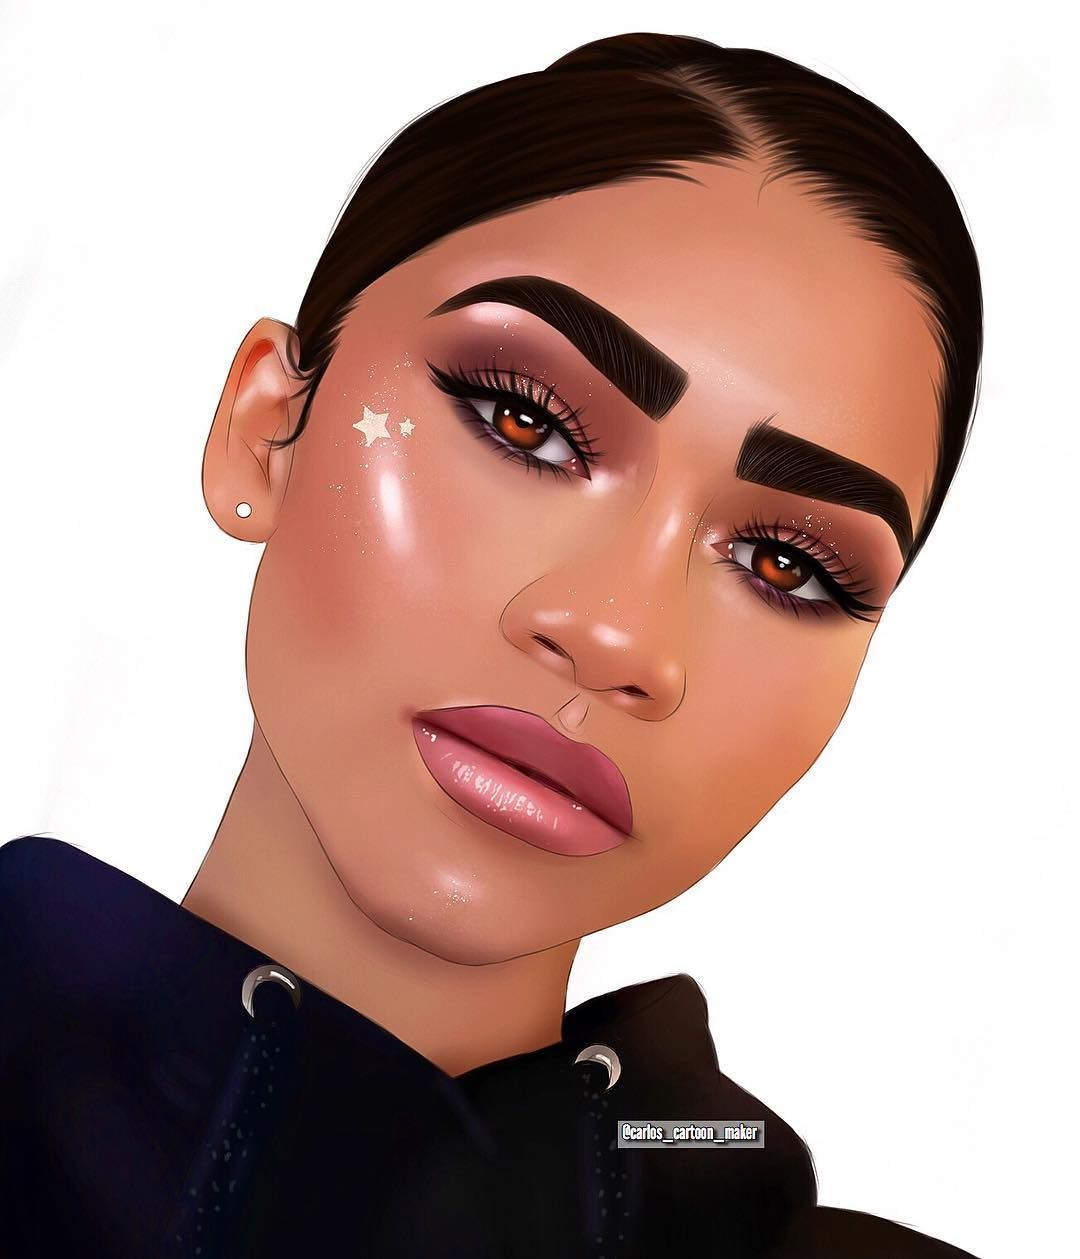 Cartoon Maker On Instagram Cartoon I Did Of Zendaya Tag Her Pls Dropping Tutorial For This L Cartoon Maker Instagram Cartoon Cartoon Girl Drawing